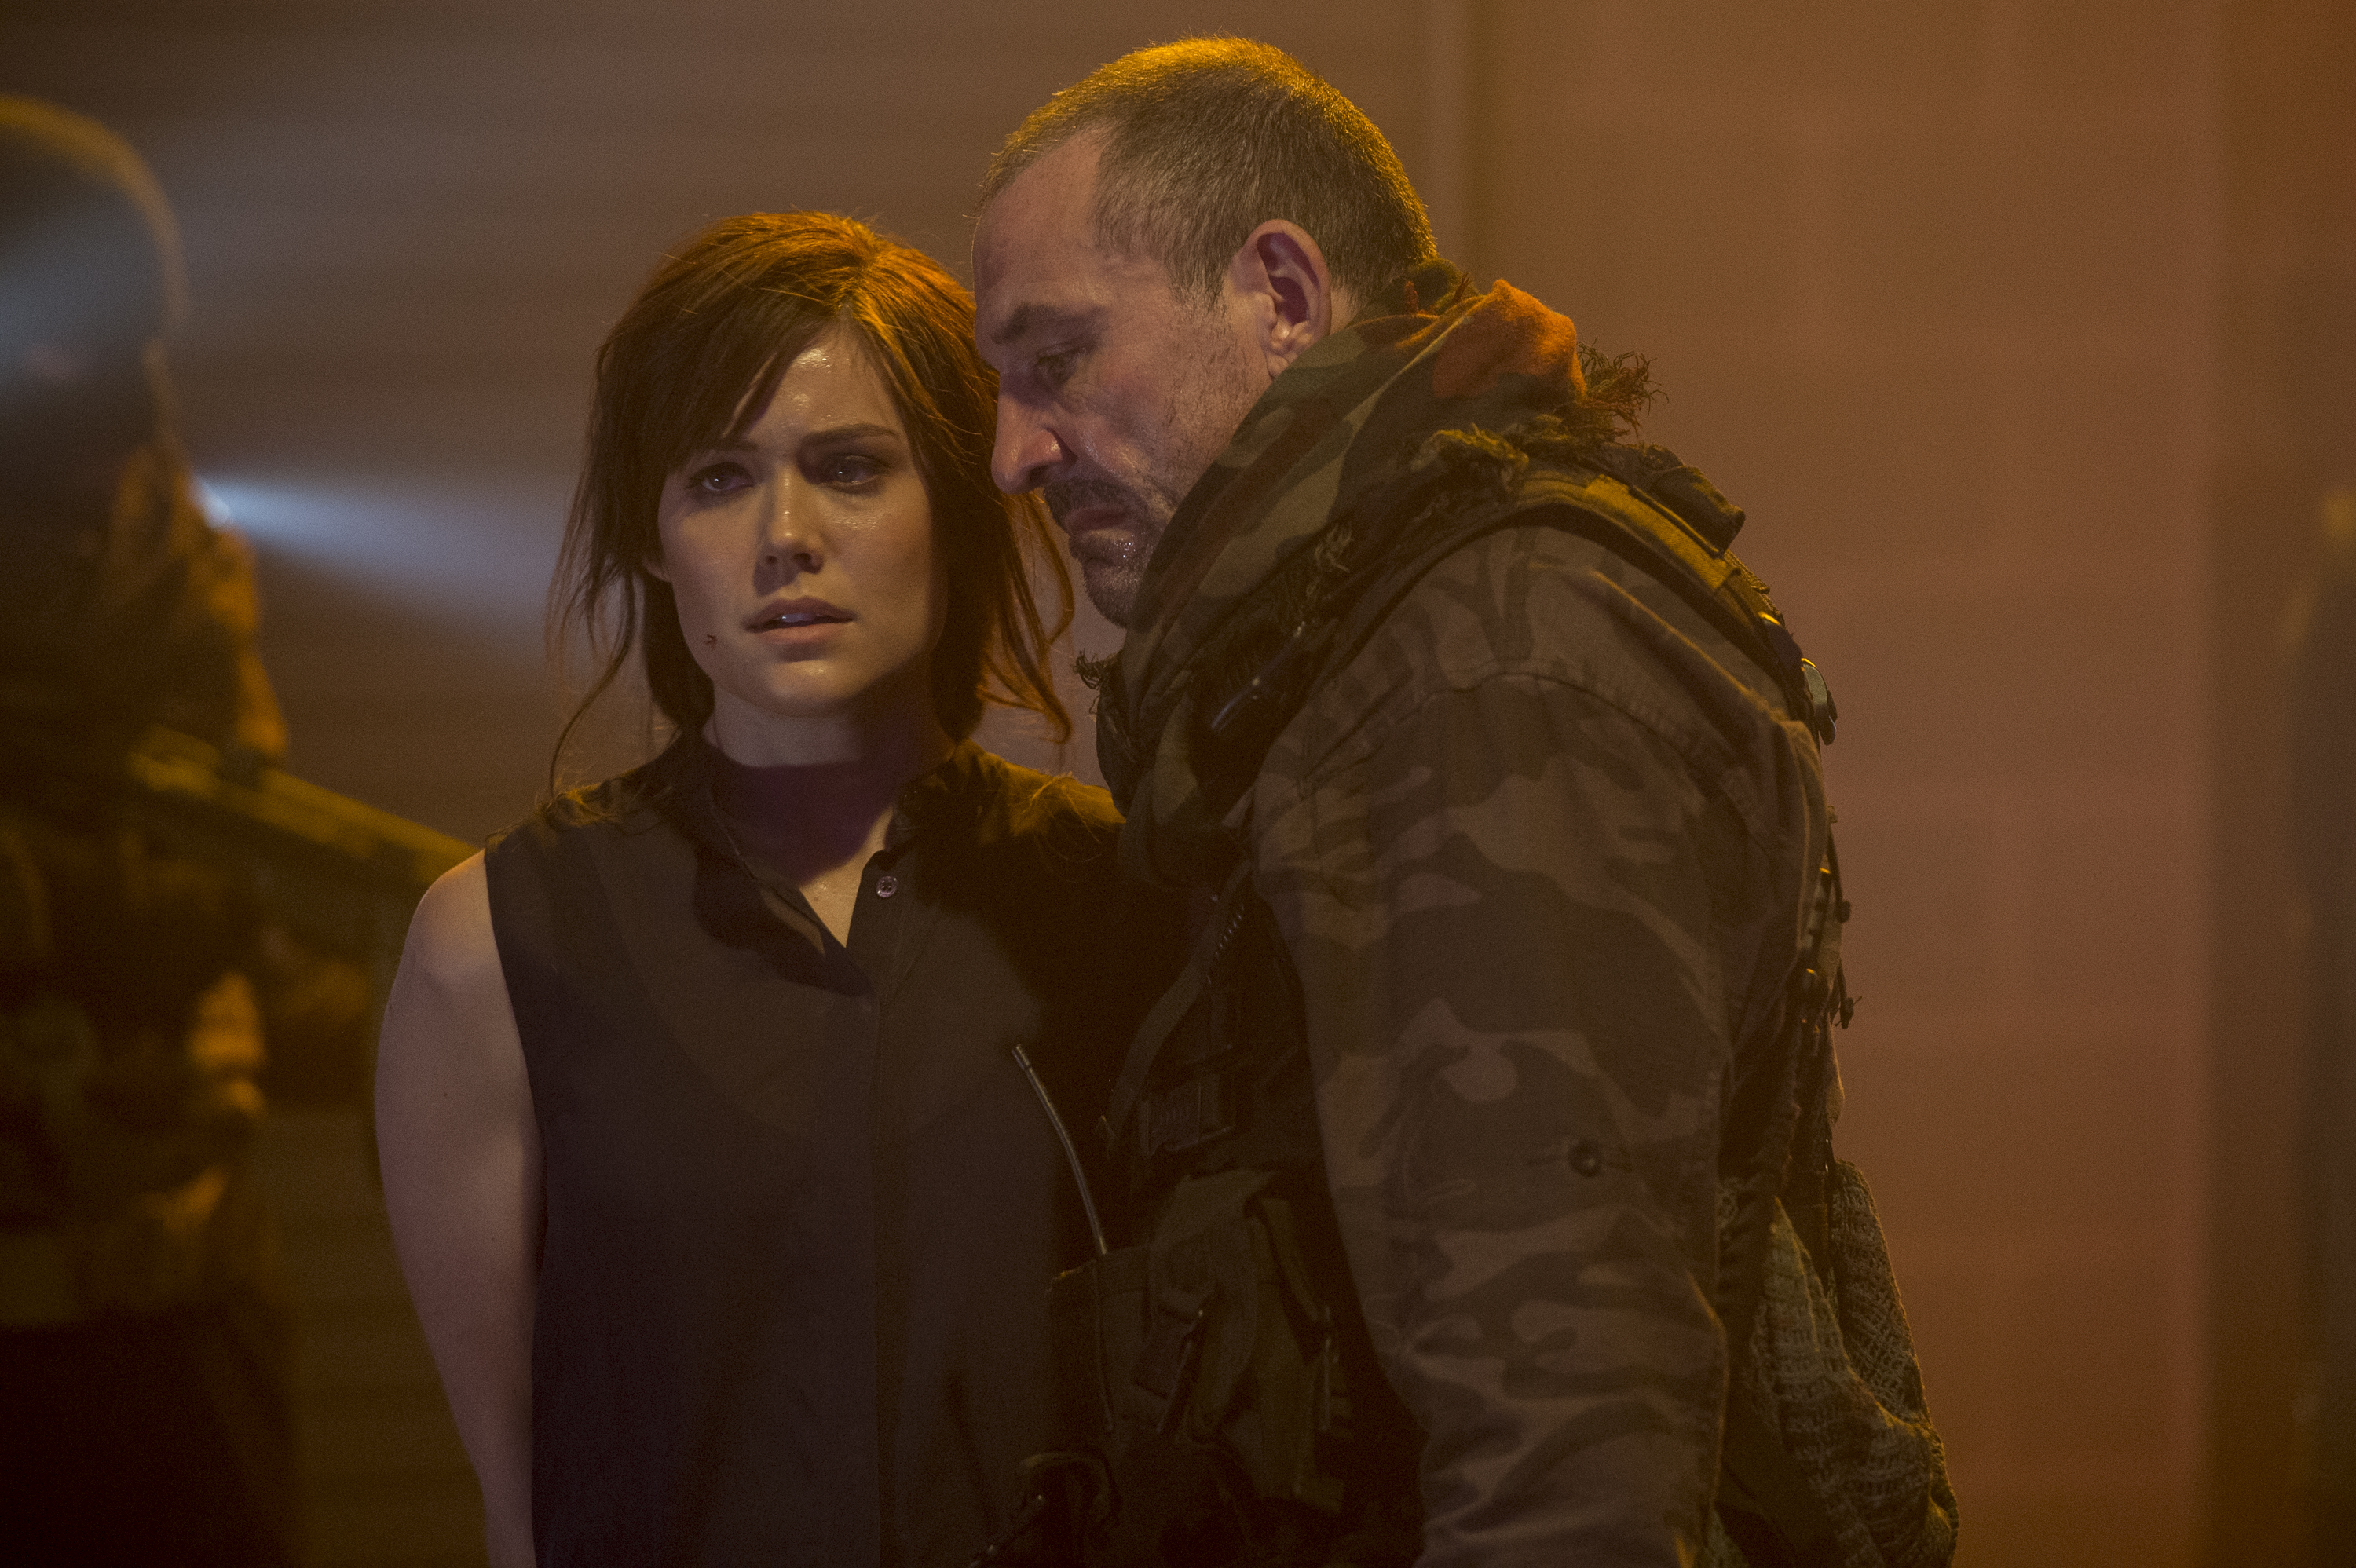 Liz and a mysterious stranger fight to save Red and Ressler.